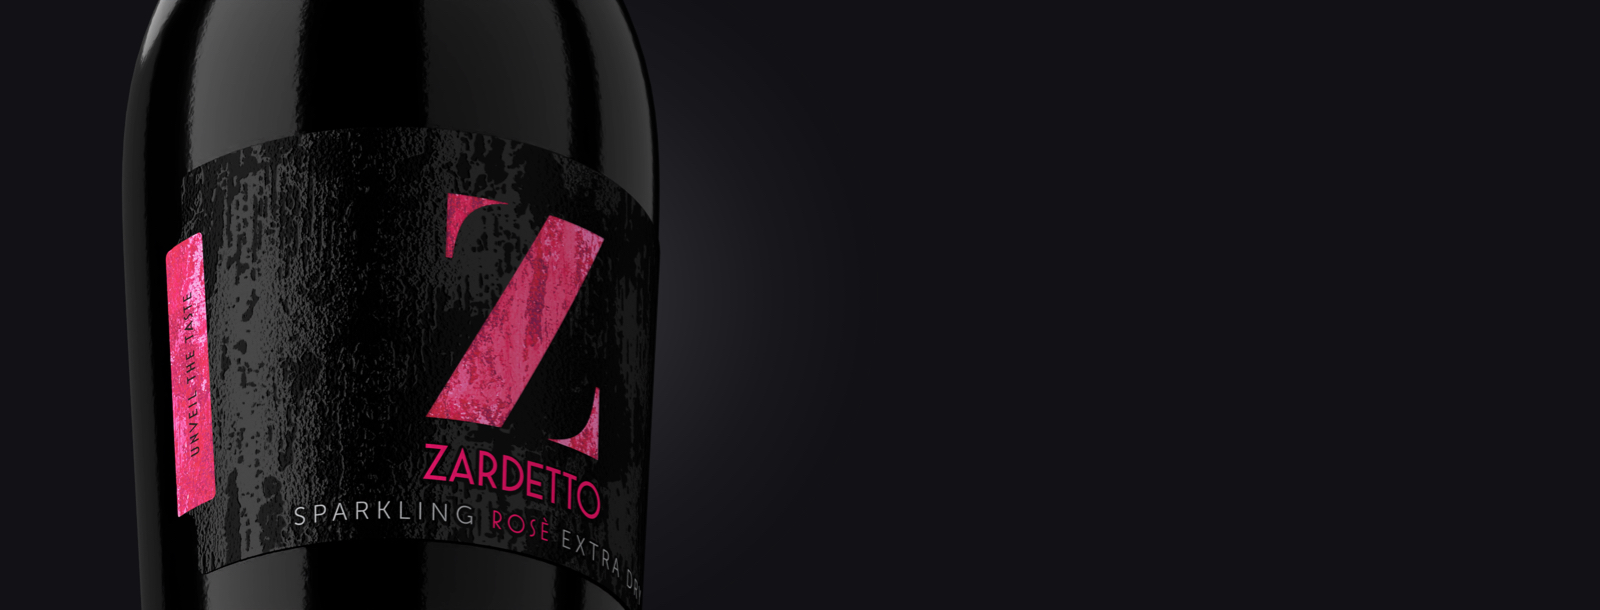 Closed Label on the bottle of Zardetto's Sparkling Rosé Extra Dry